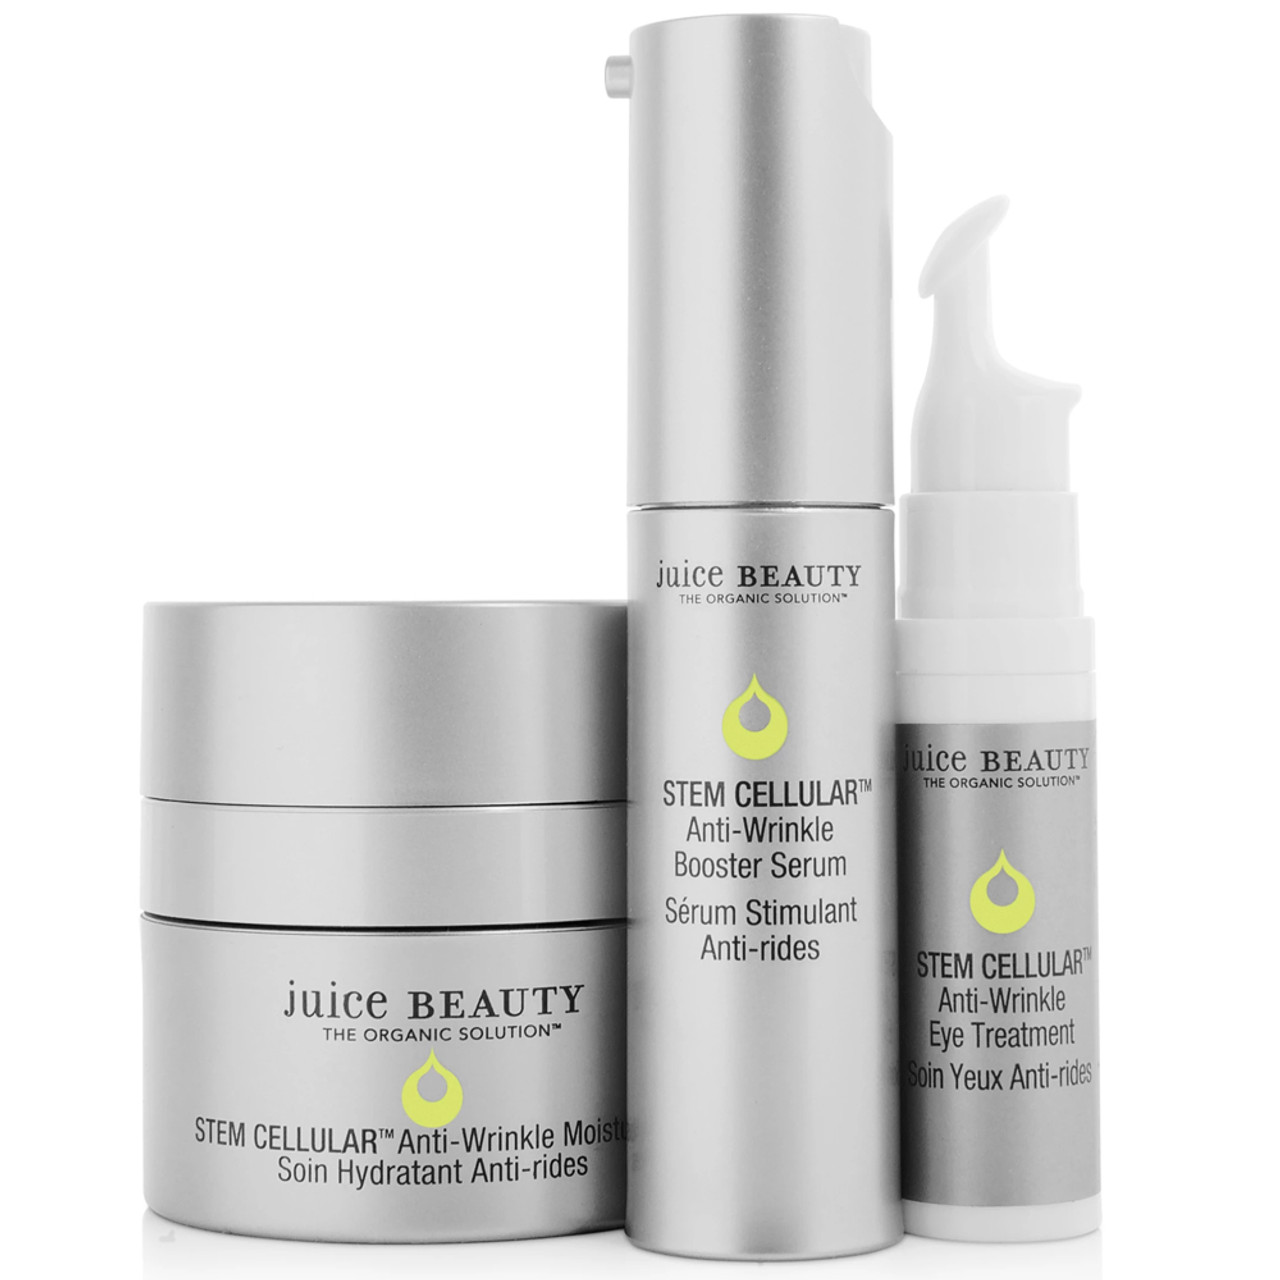 Juice Beauty SC Anti-Wrinkle Solutions Kit